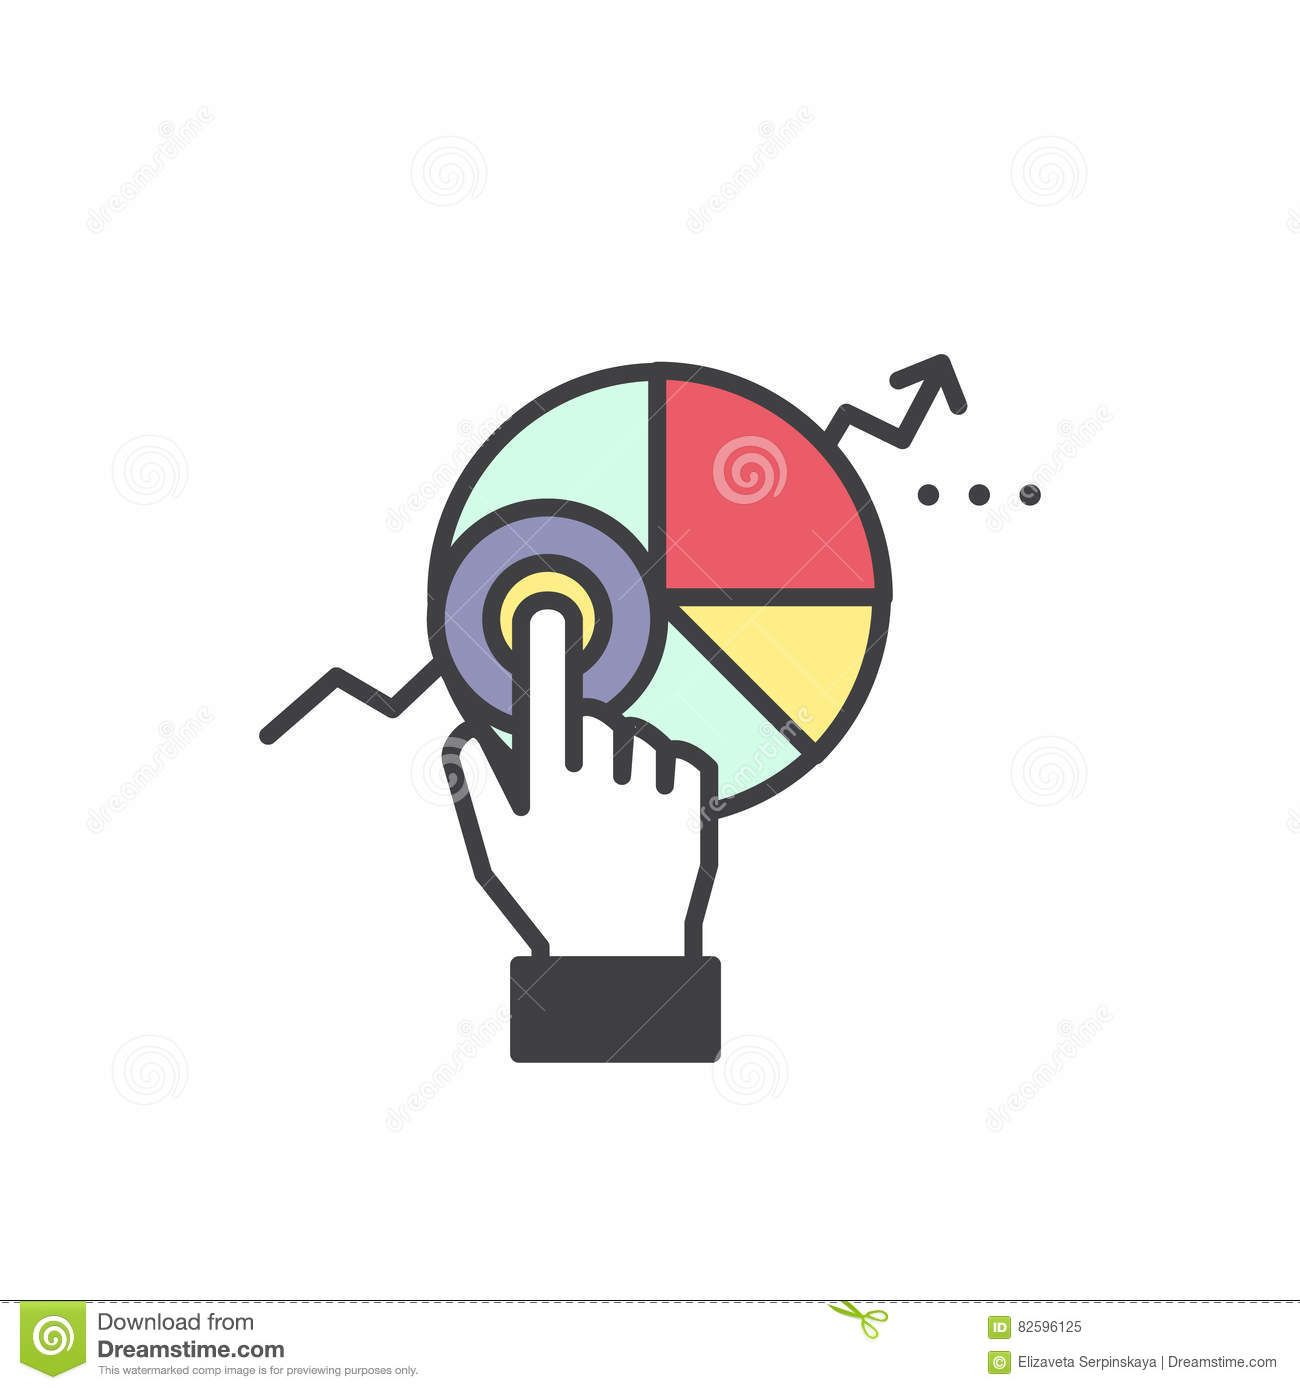 Logo of Web Analytics Information and Development Website Statistic with Simple Data Visualisation with Graphs and Diagram